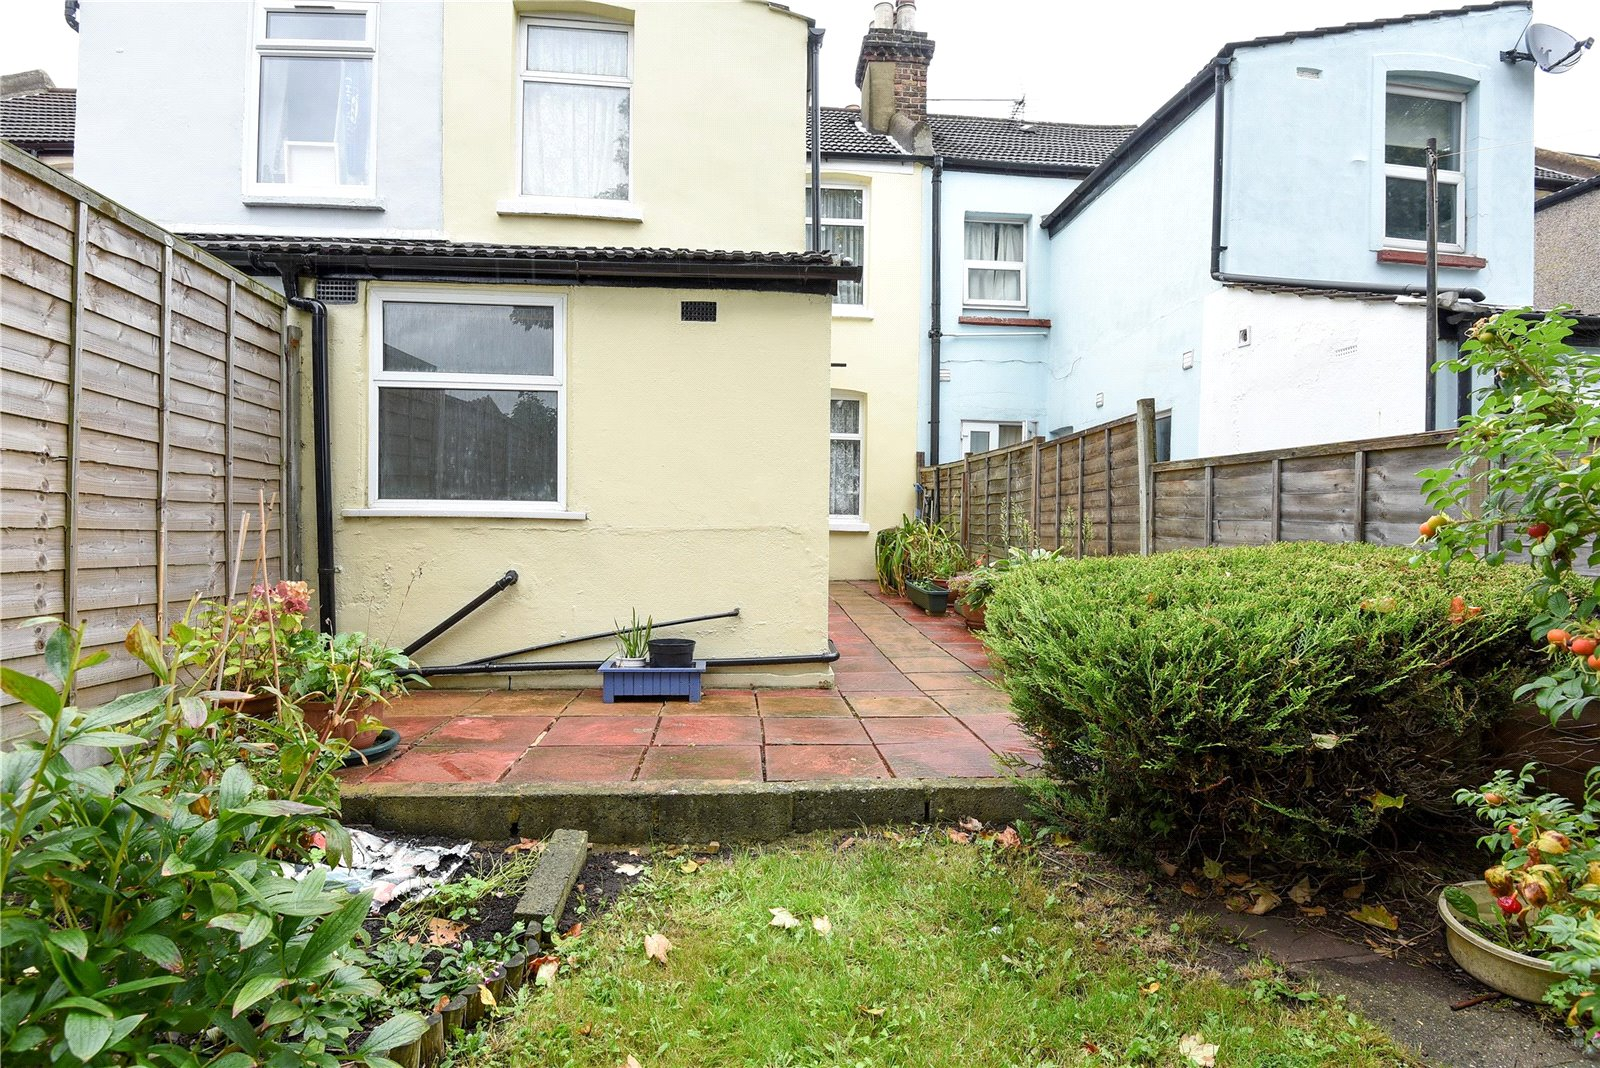 3 bed house for sale in Thornton Heath 2